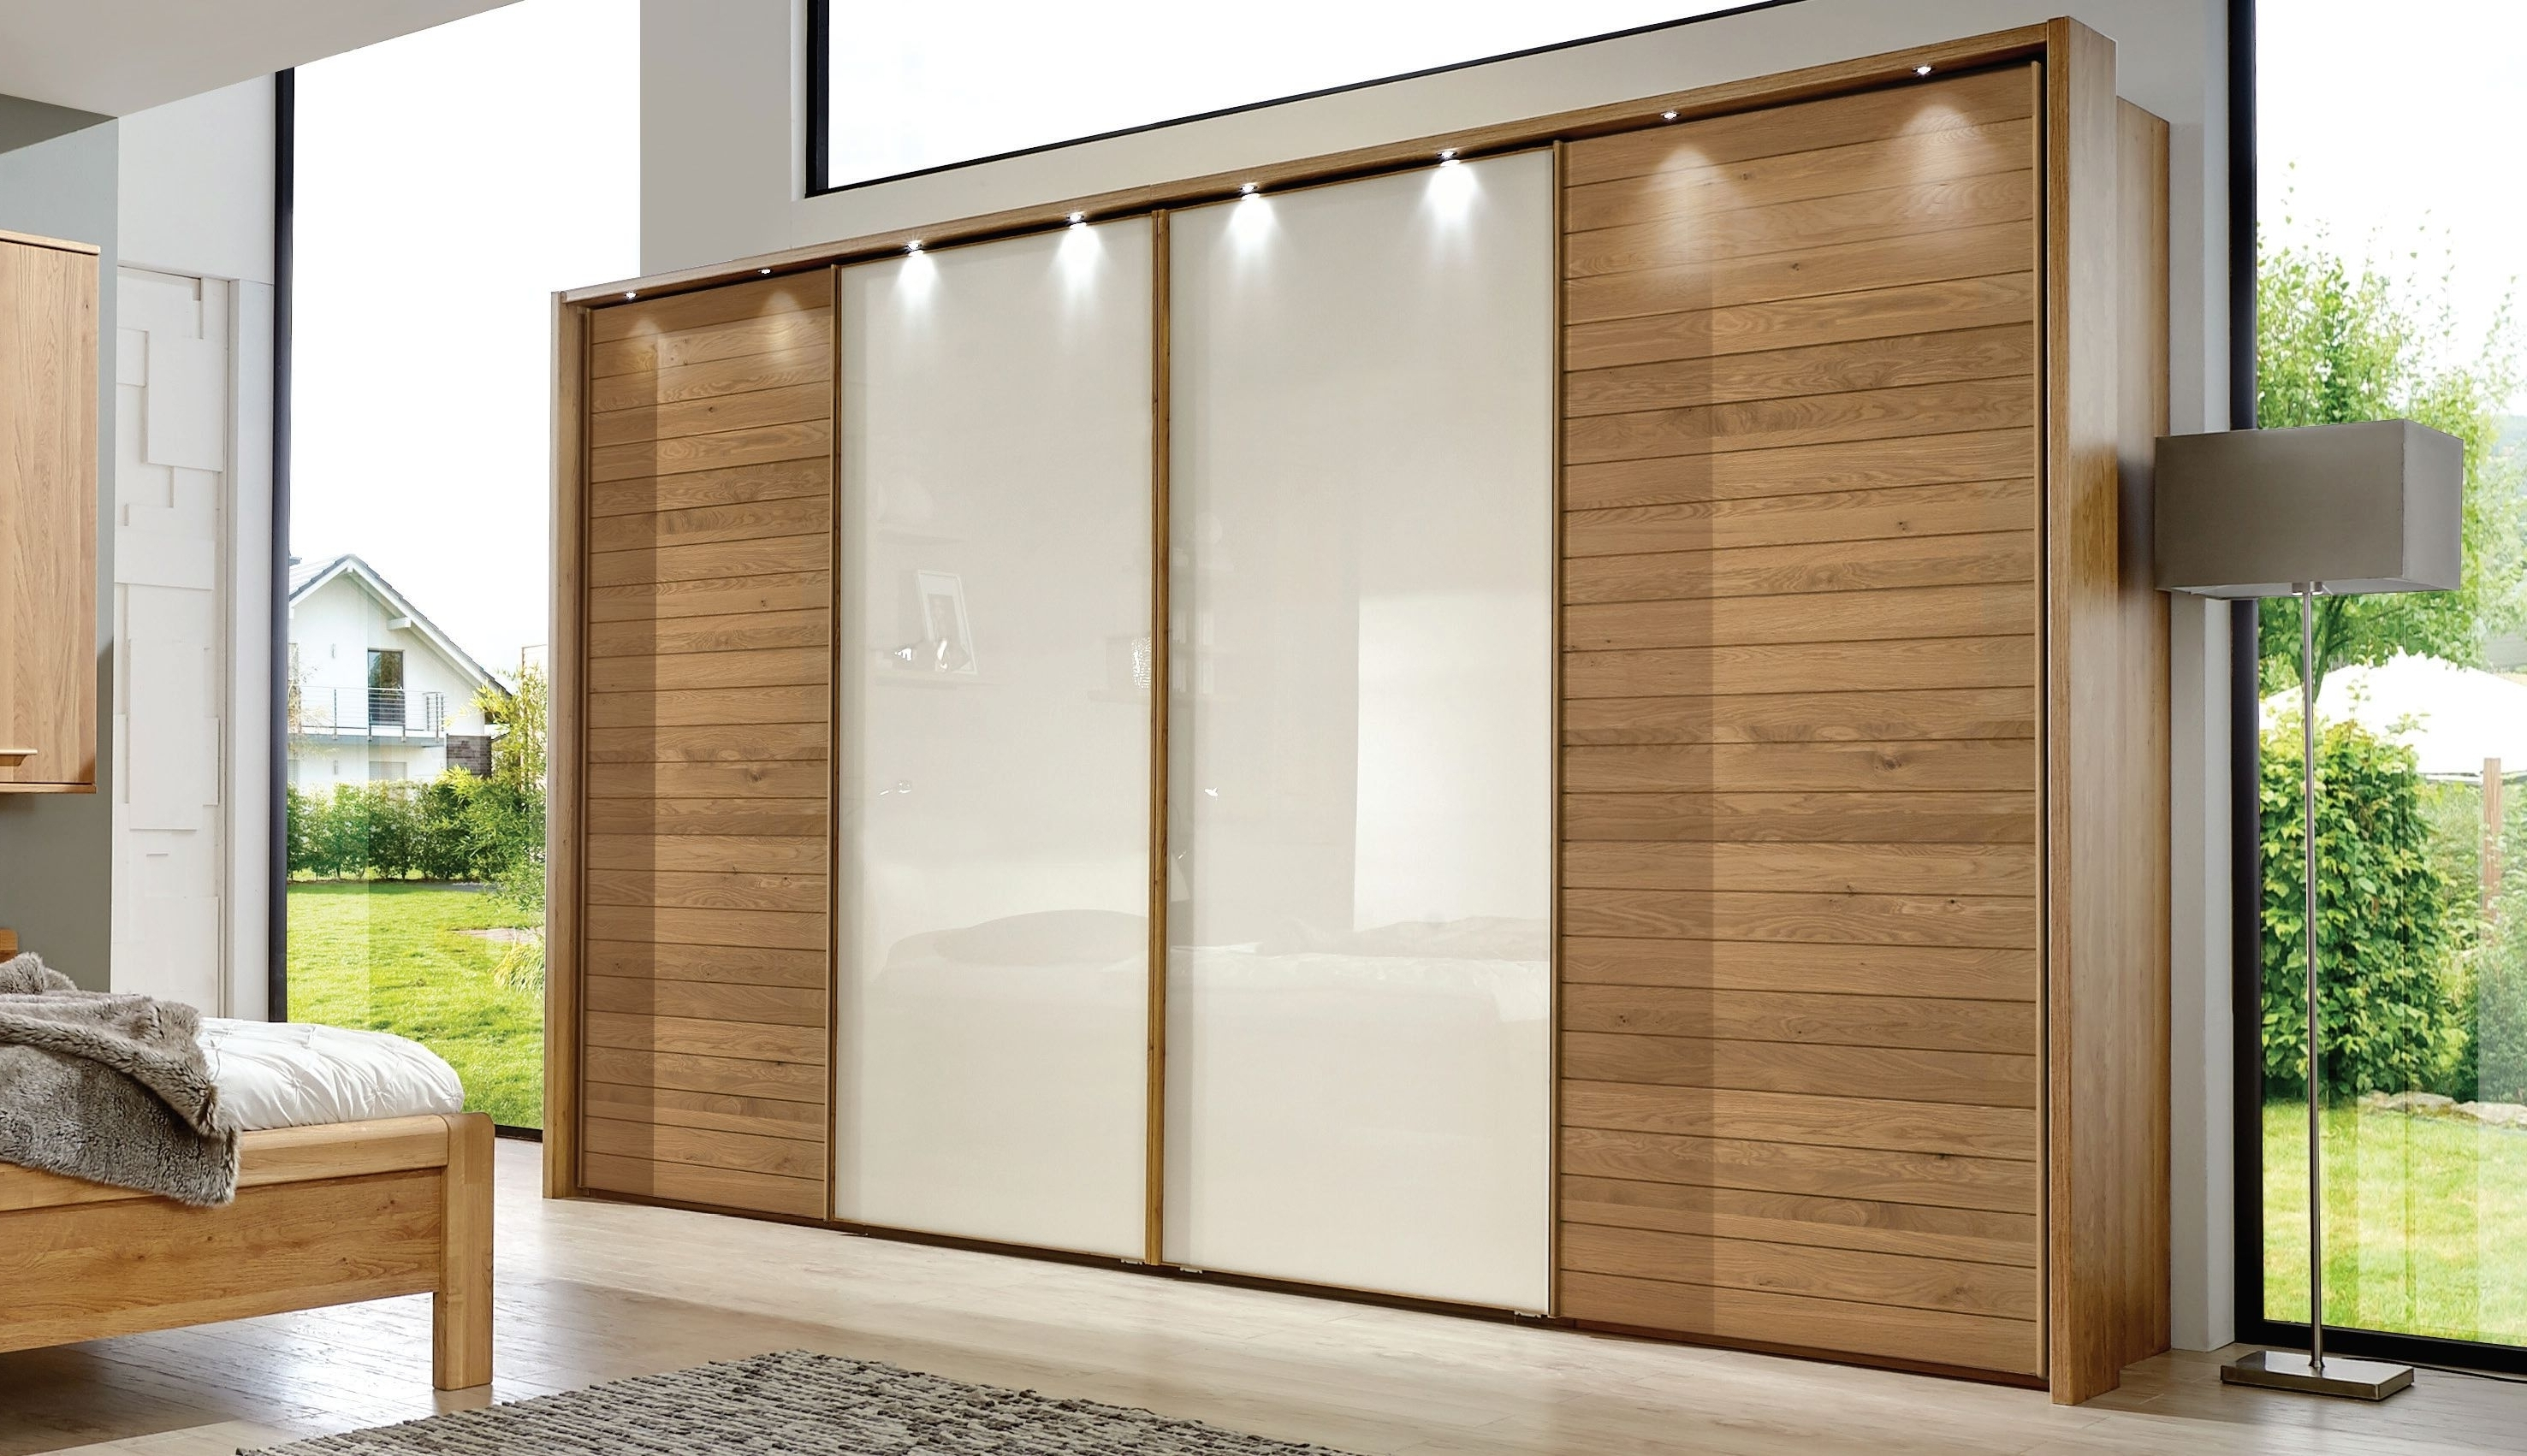 Current Buy Wiemann Biscaya Sliding Door Wardrobes Without Cornice Online Inside Sliding Door Wardrobes (View 1 of 15)